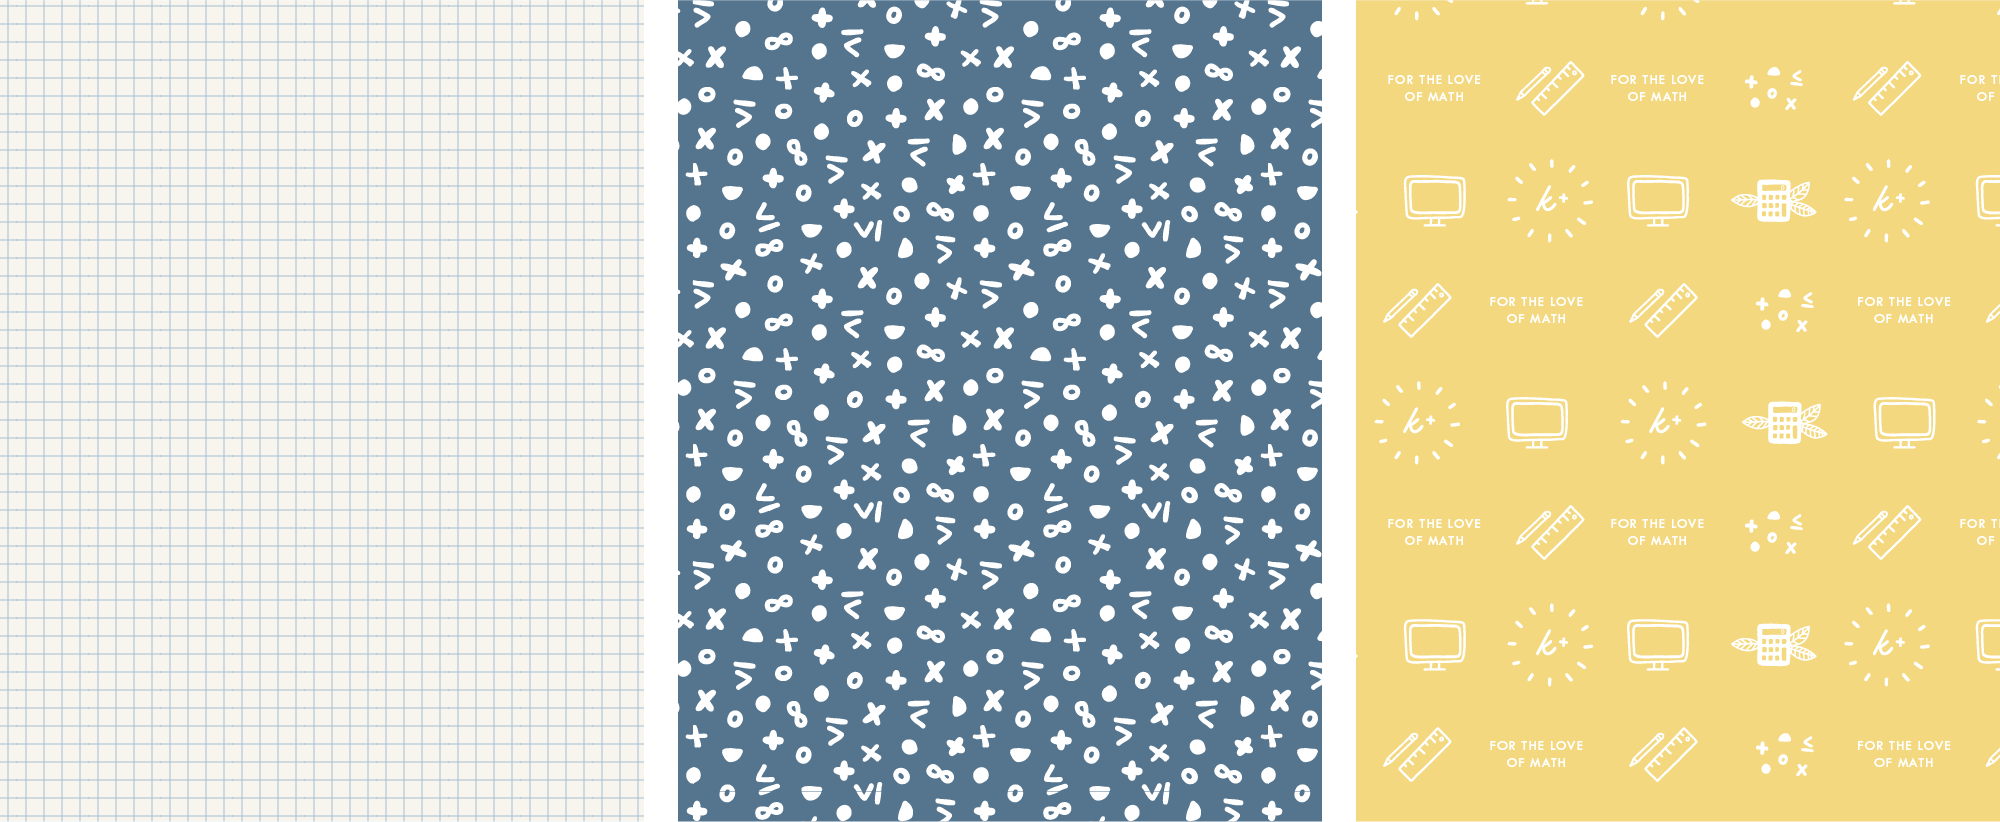 Krista King Math brand pattern designs | Brand design project created in collaboration between Spruce Rd. and Pace Creative Design Studio